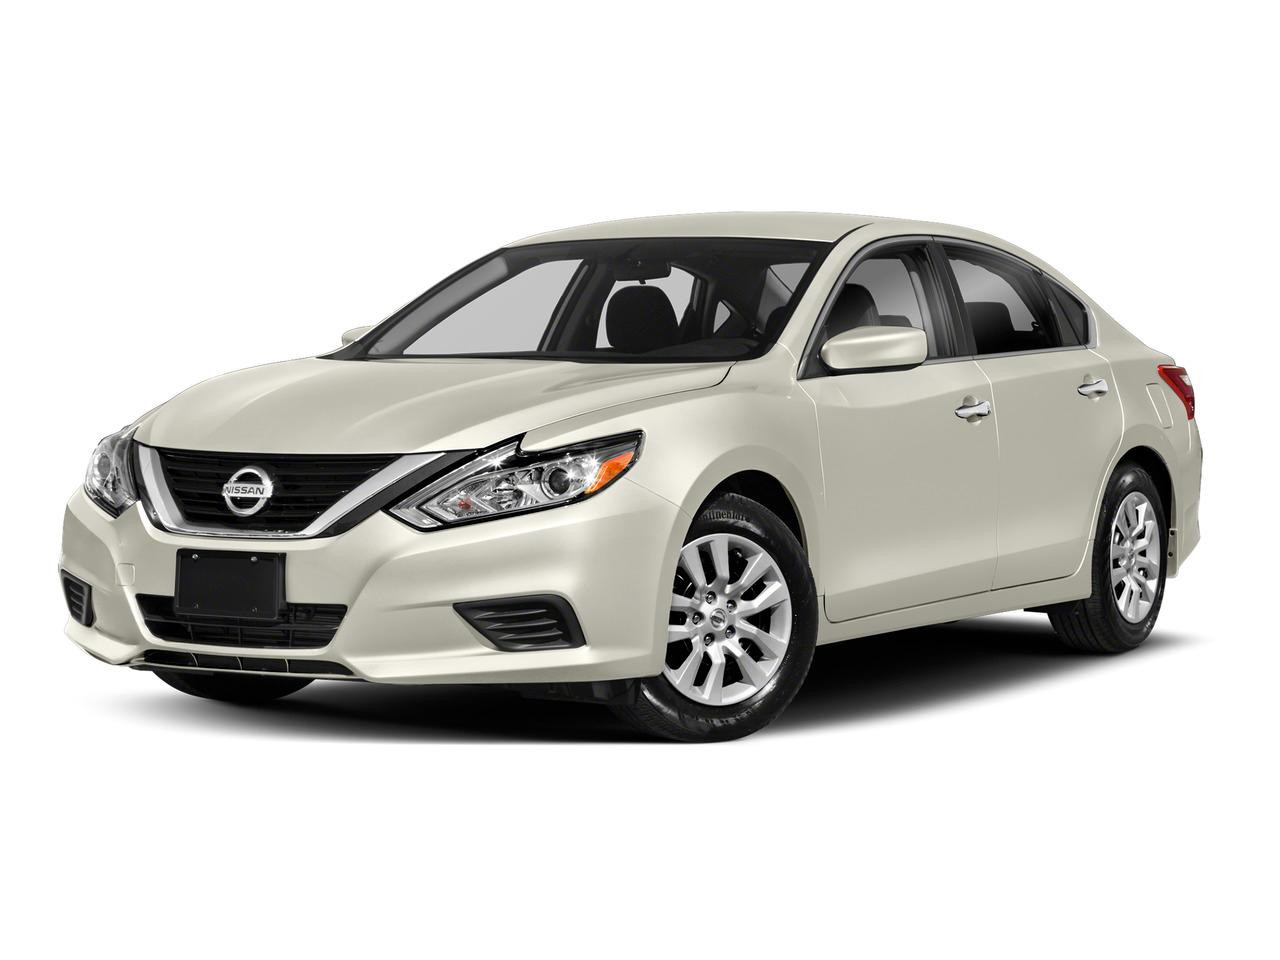 2018 Nissan Altima Vehicle Photo in American Fork, UT 84003